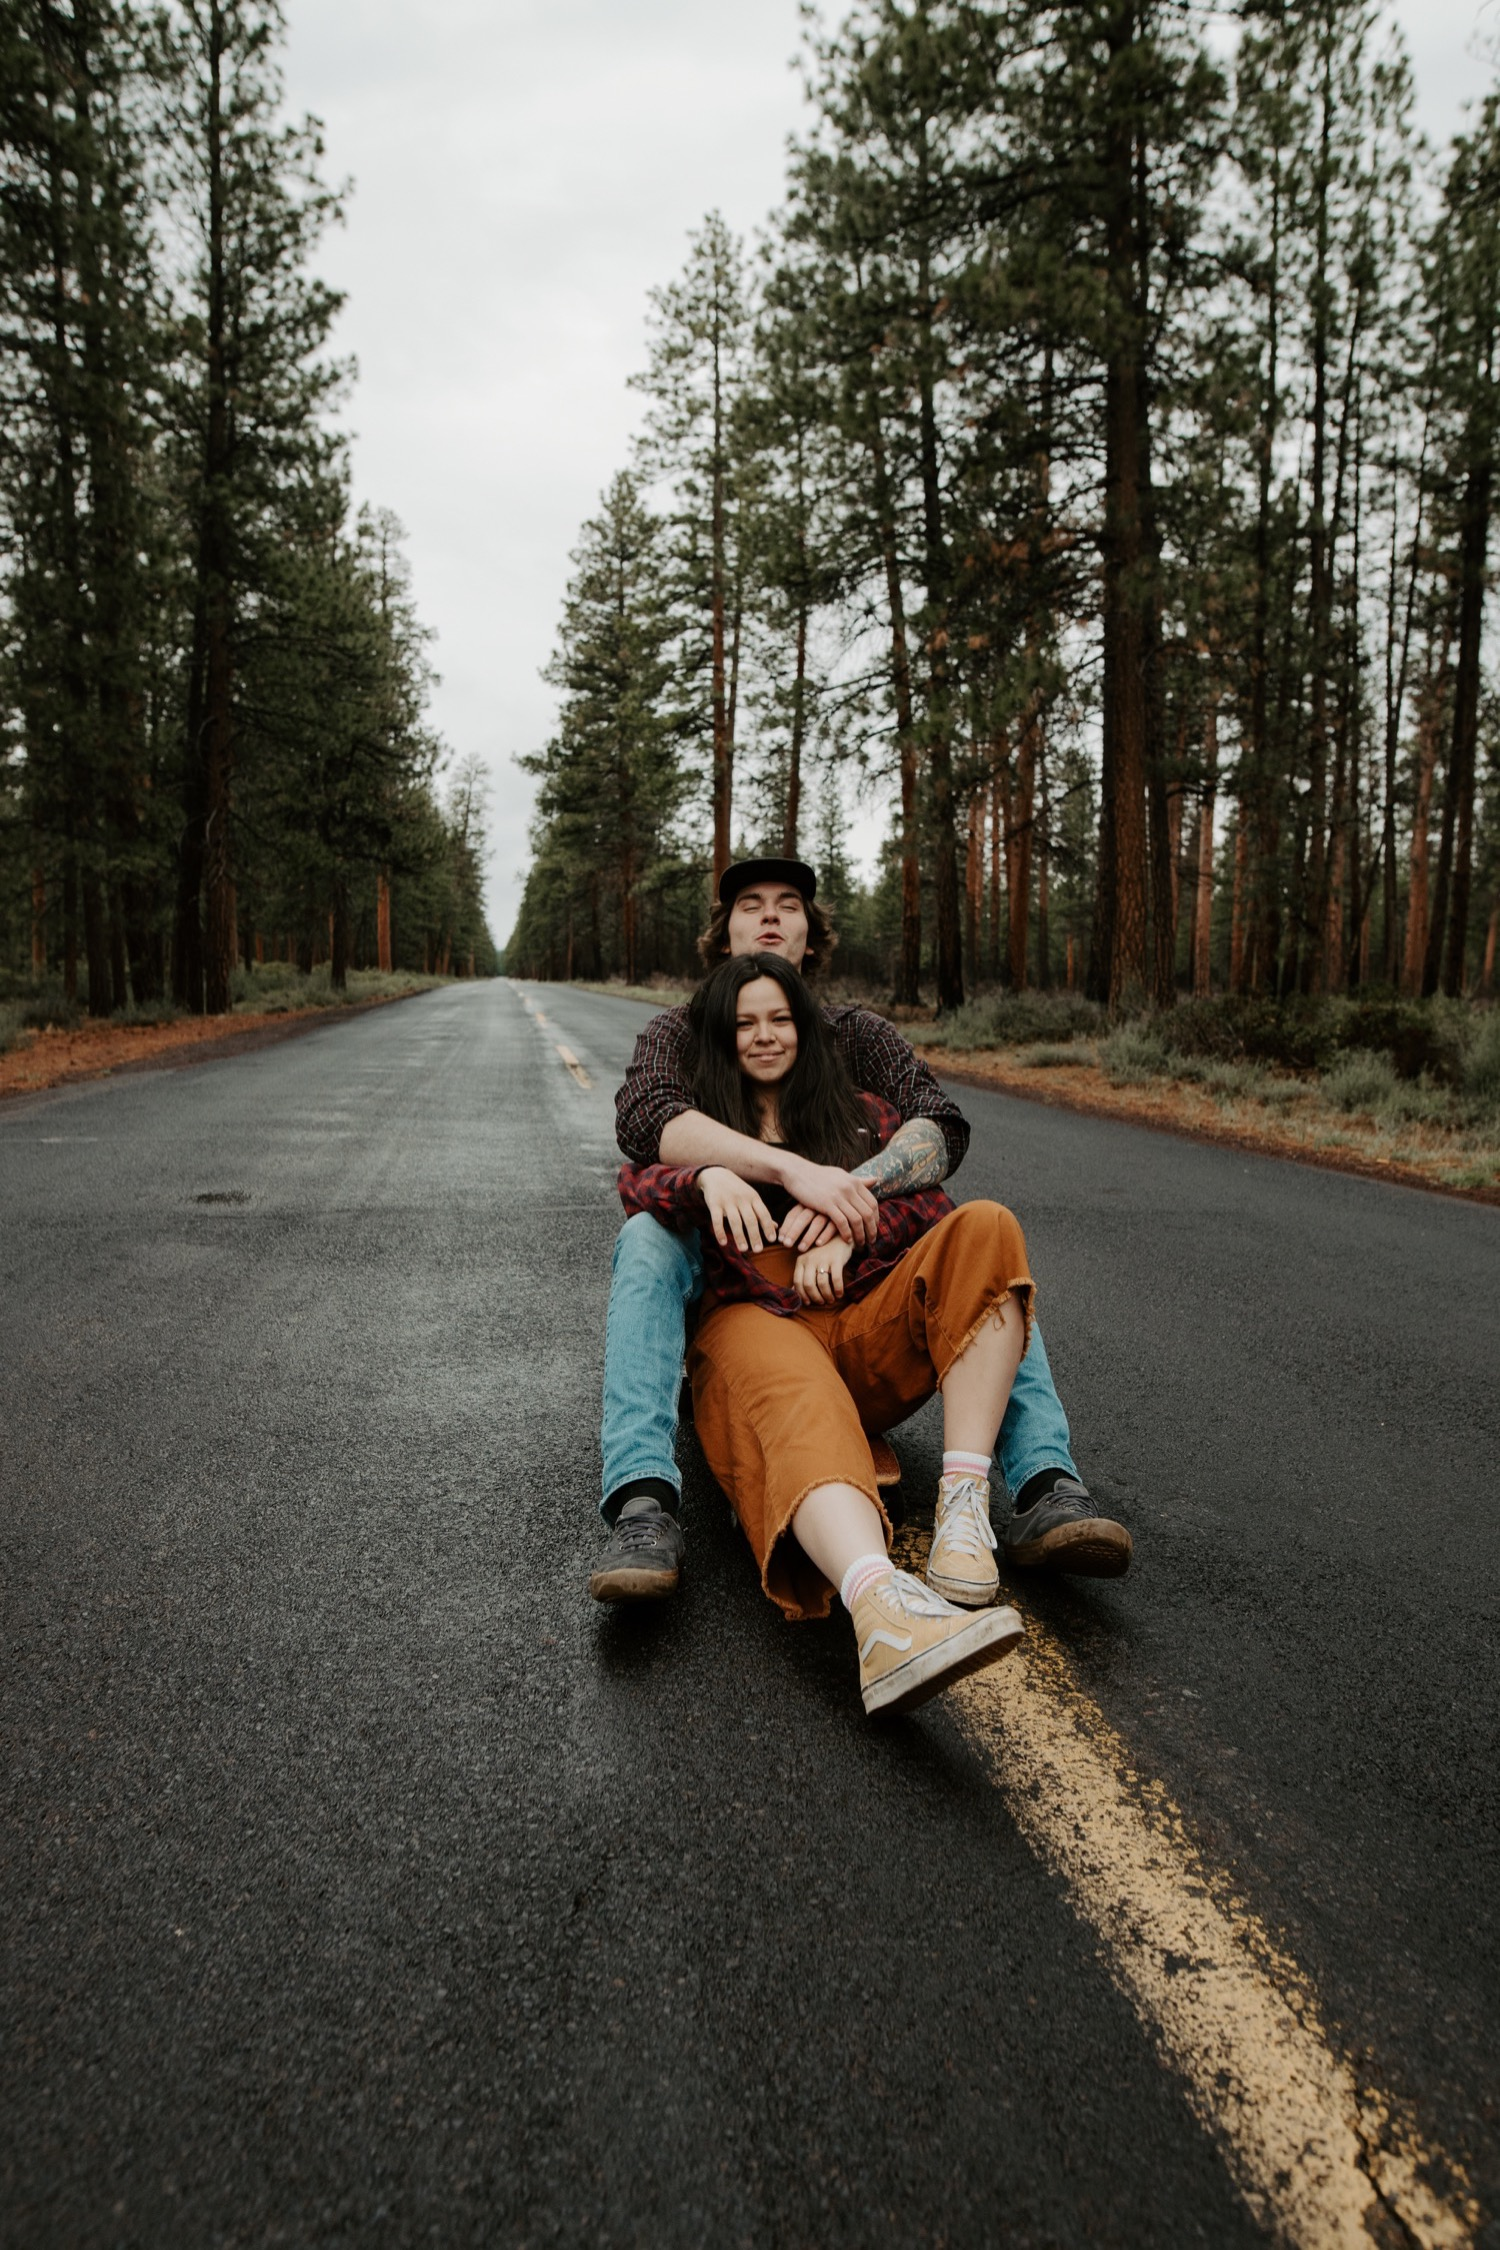 21_Sisters_Oregon_Adventure_Session-25_Oregon_couple_engagement_Bend_adventure_Photography_PNW_longboard.jpg